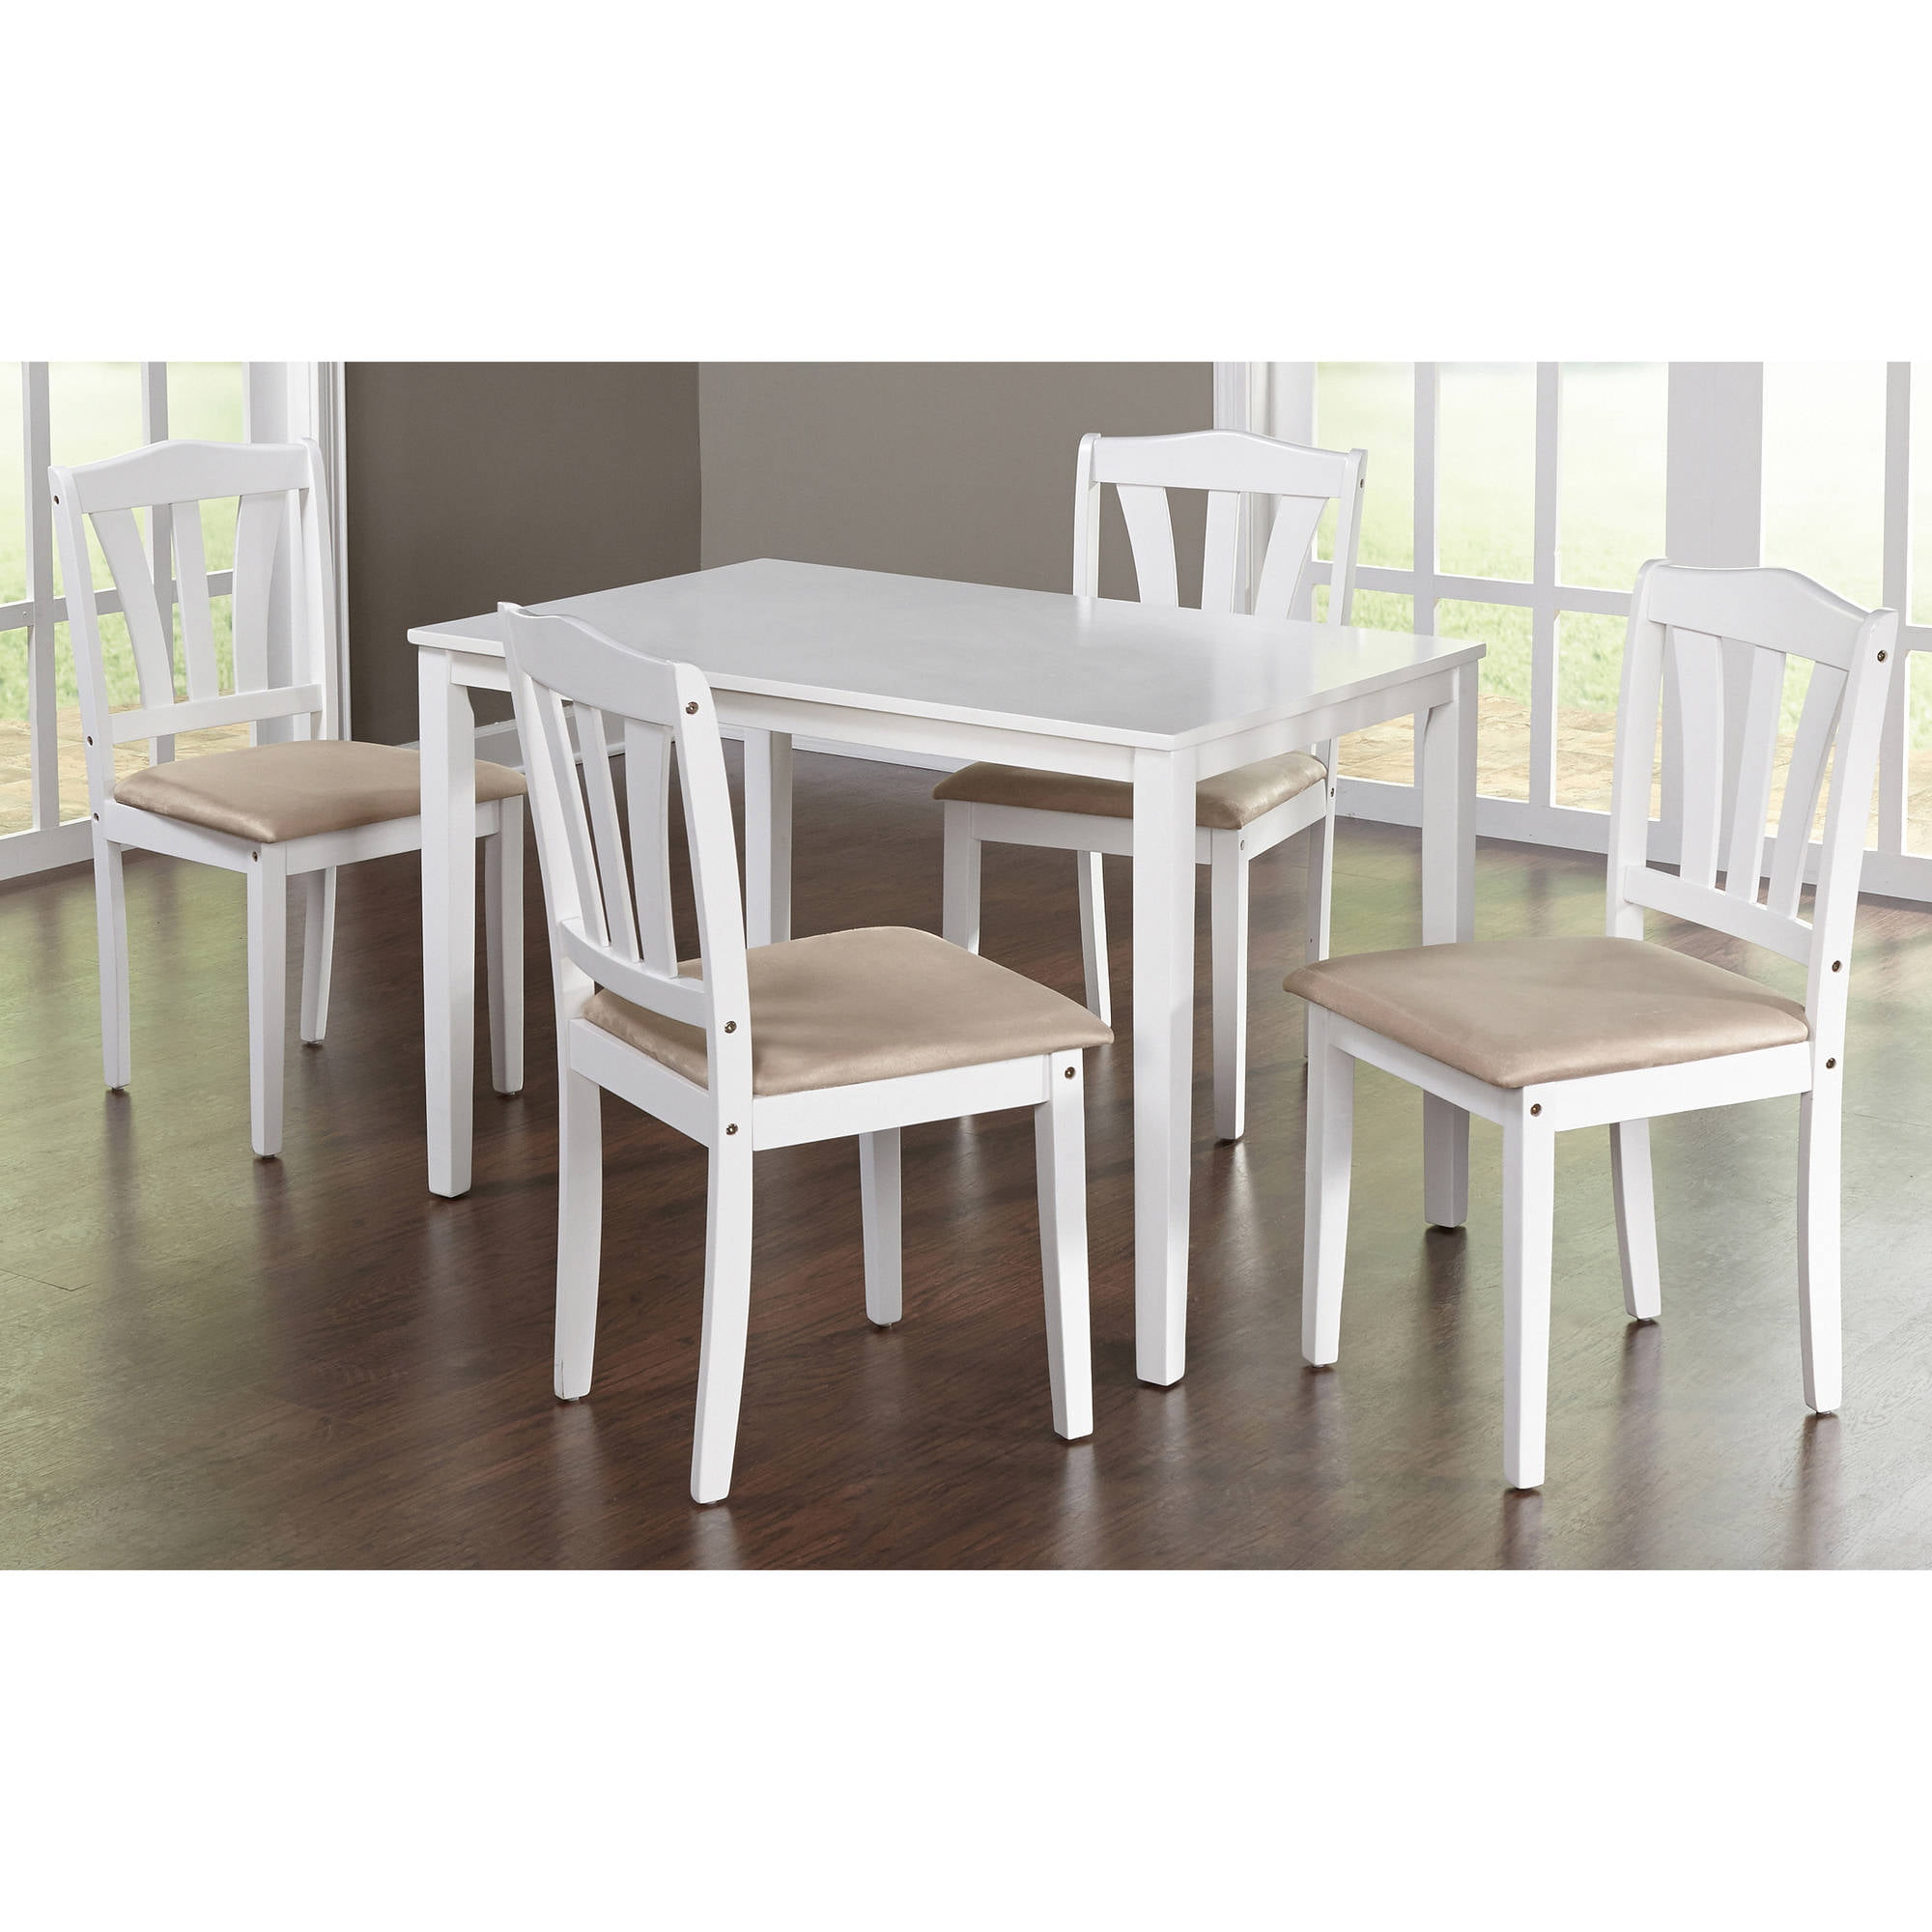 metropolitan 5 piece dining set multiple colors walmartcom - Walmart Kitchen Tables